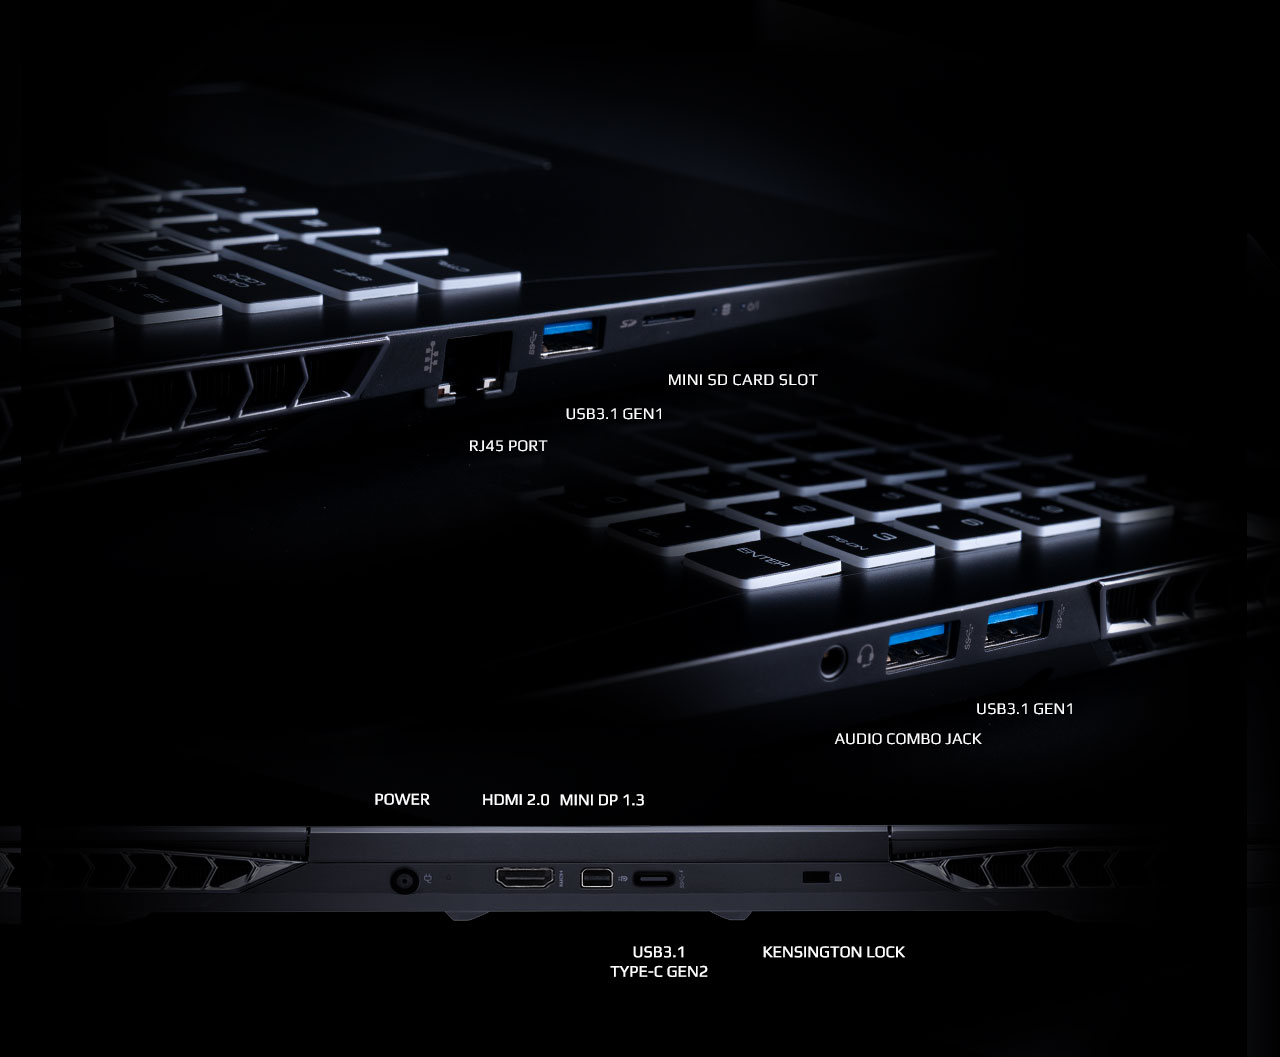 Ports on three sides (left, right and back) of the AORUS 15 Gaming Laptop